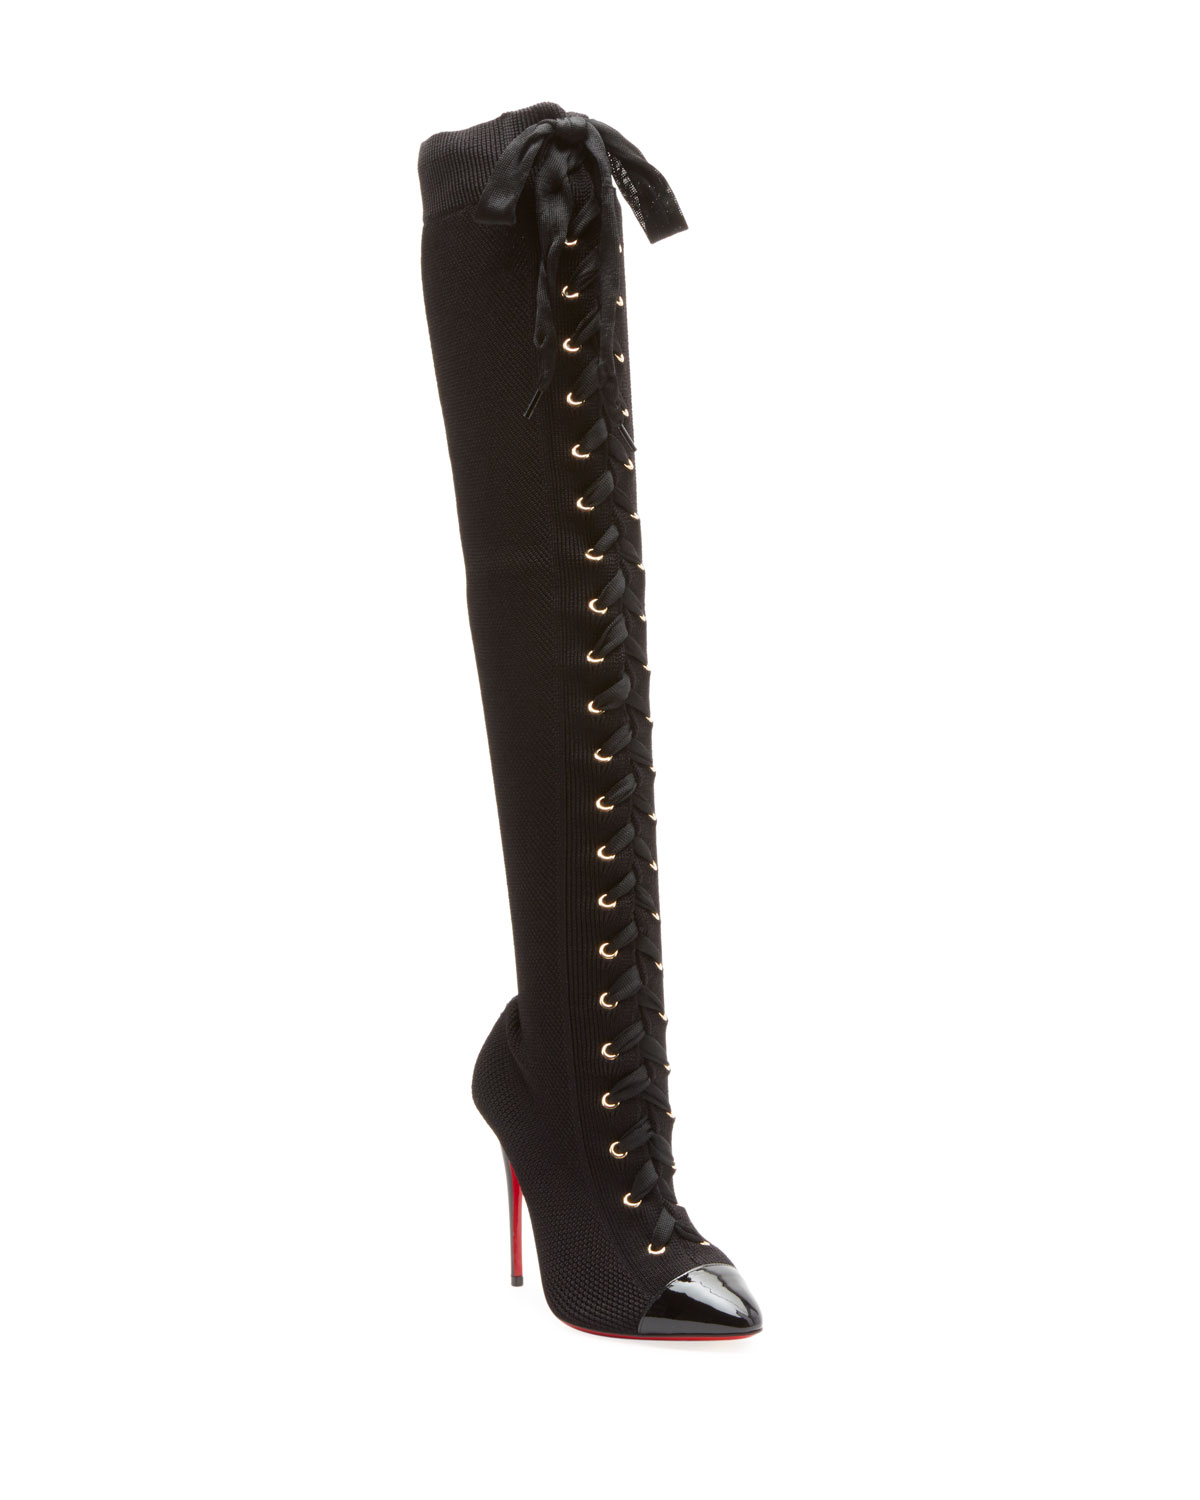 CHRISTIAN LOUBOUTIN FRENCHIE OVER-THE-KNEE RED SOLE BOOTS